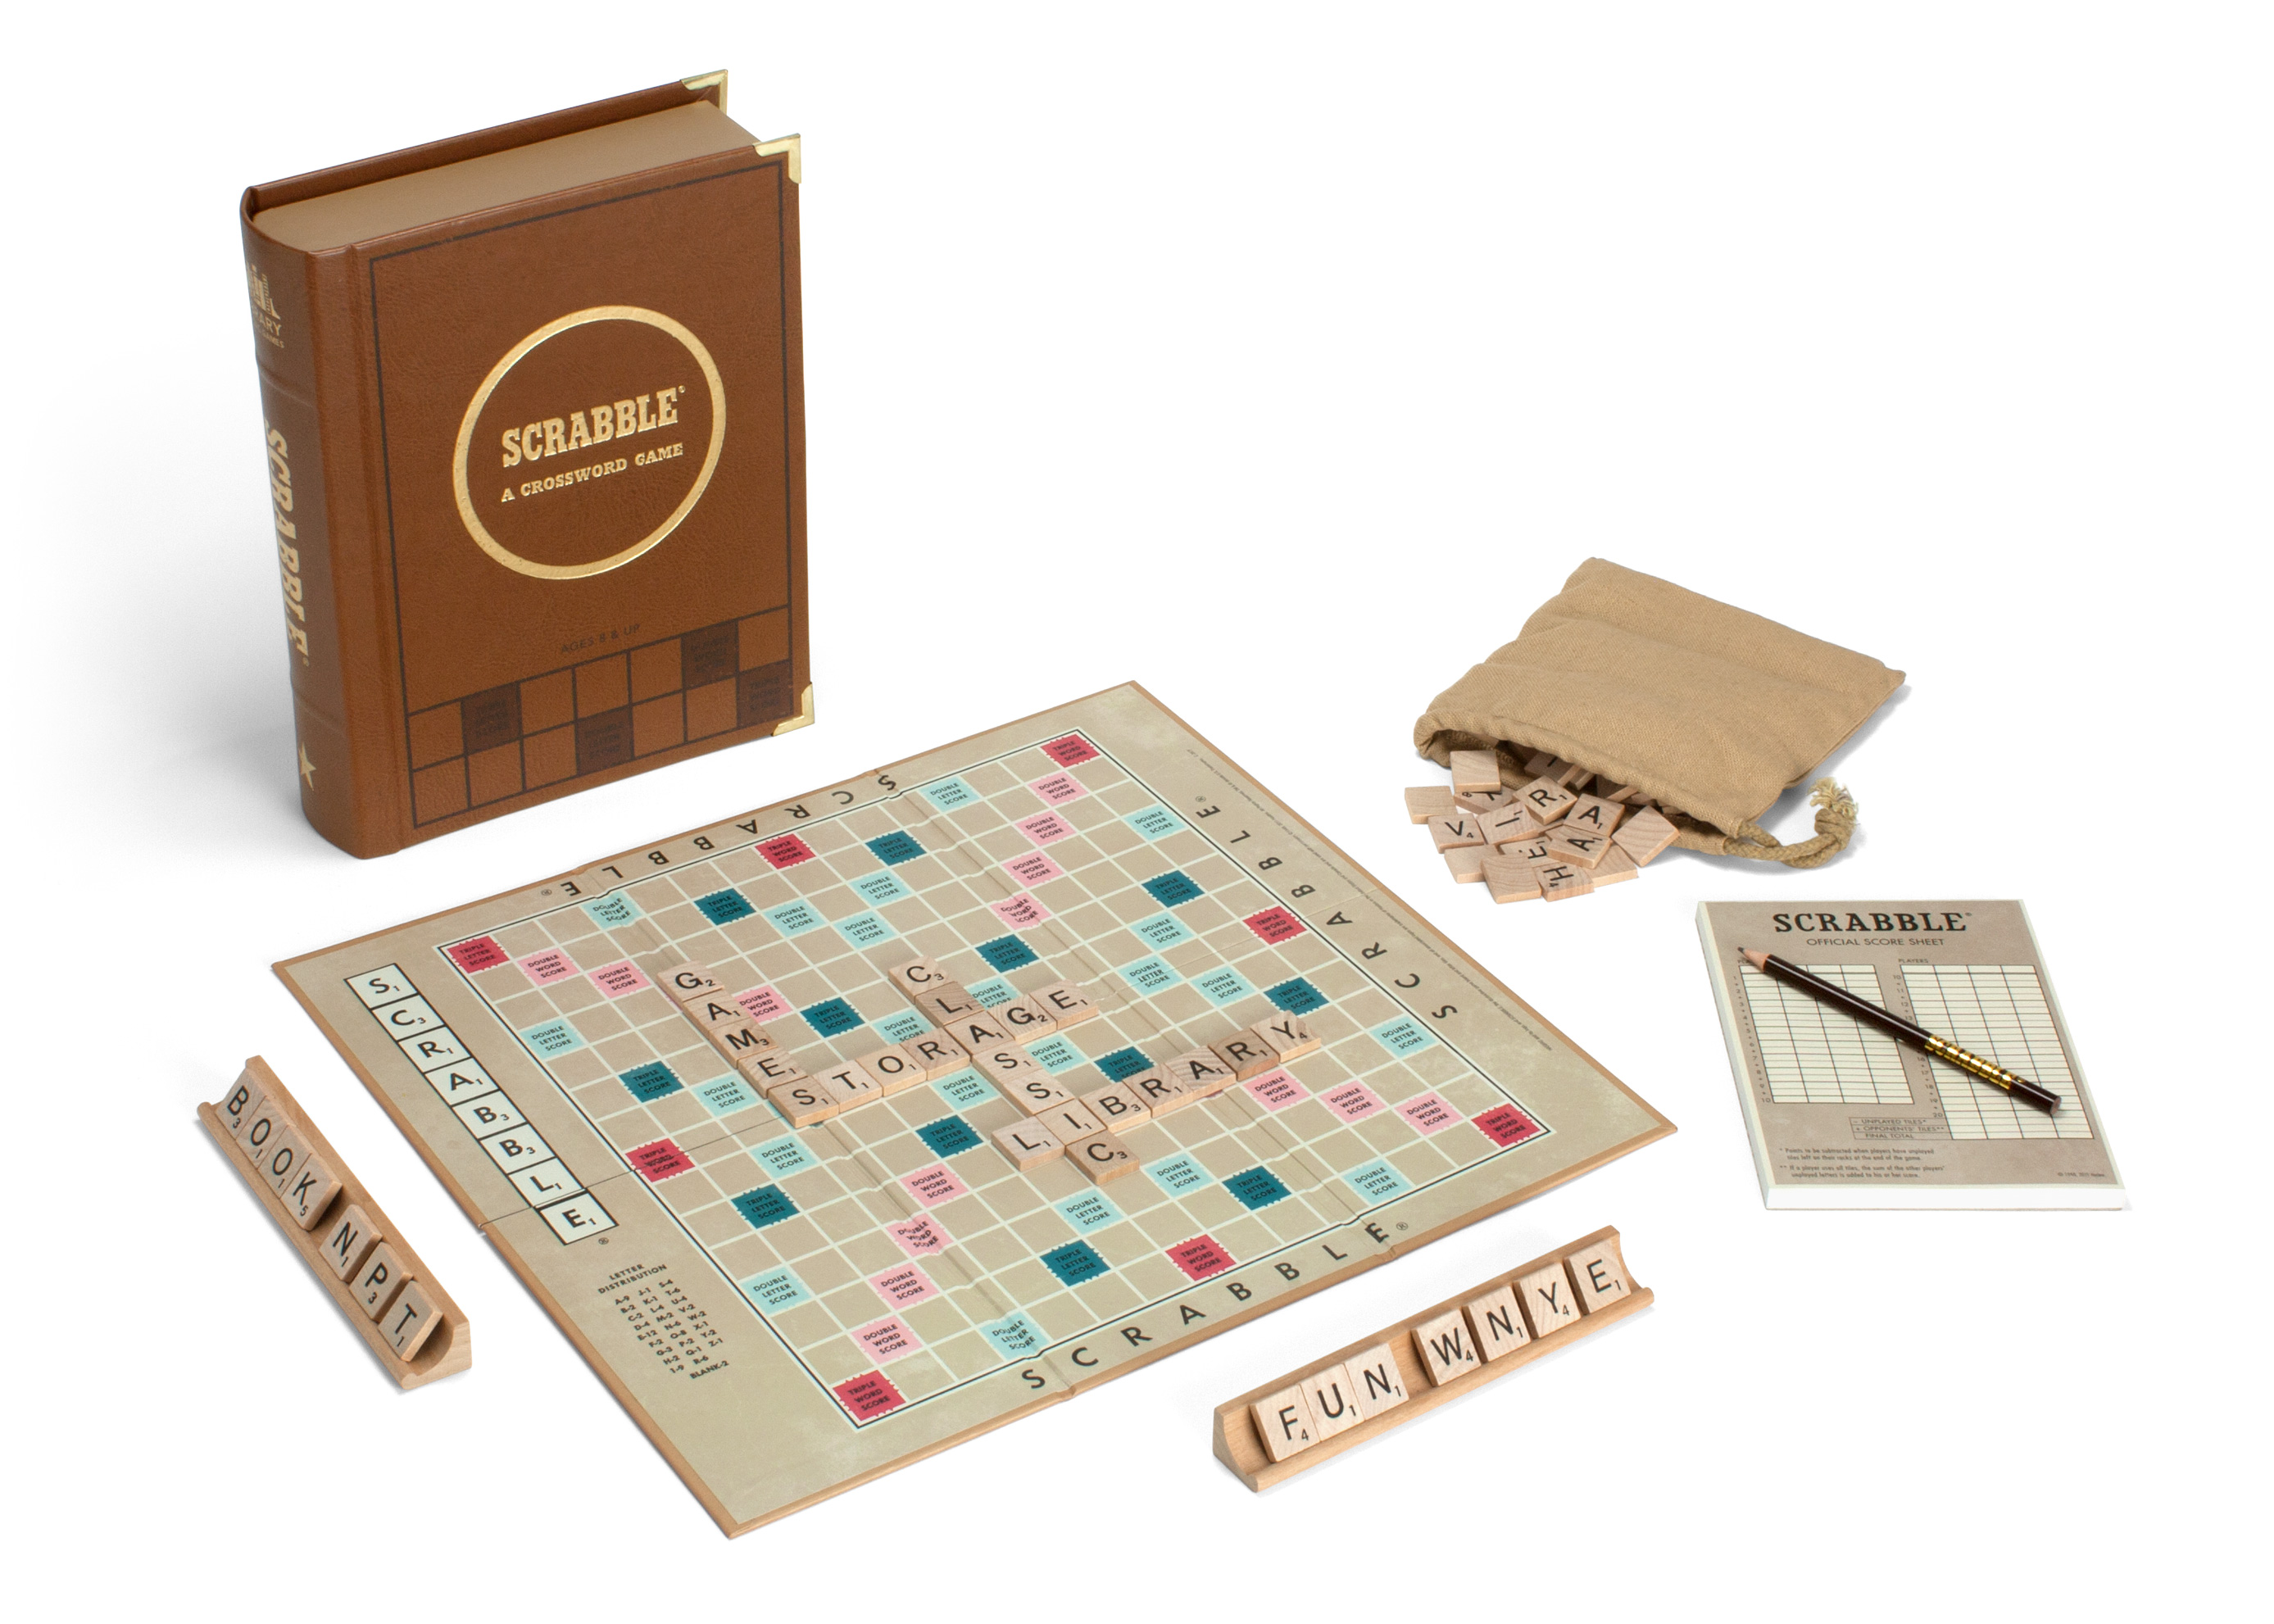 Scrabble library classic collectors edition special game free.